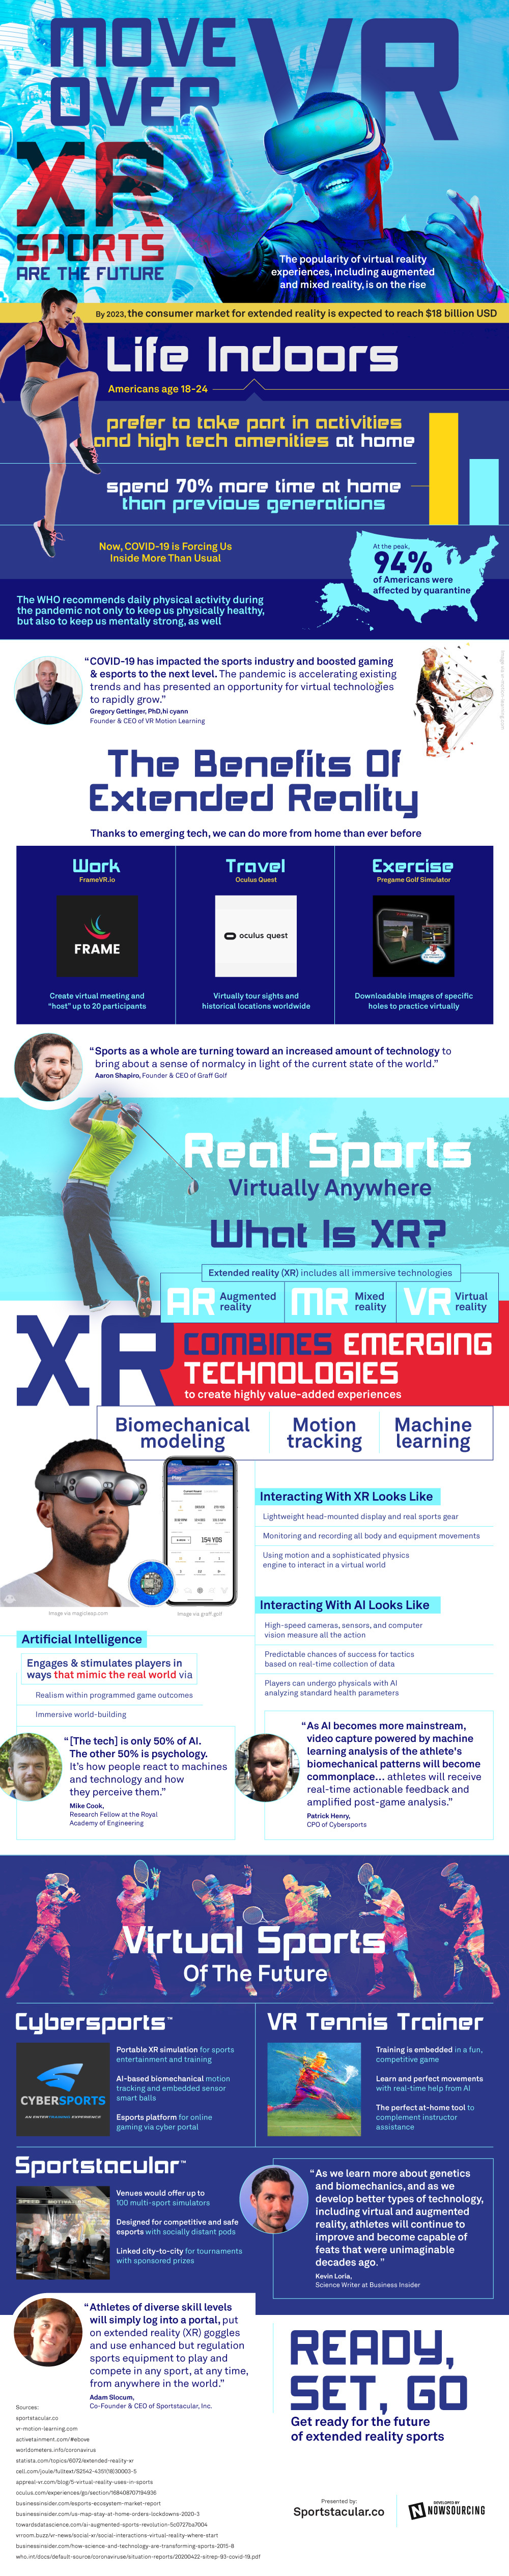 XR Sports Are Here To Stay 2